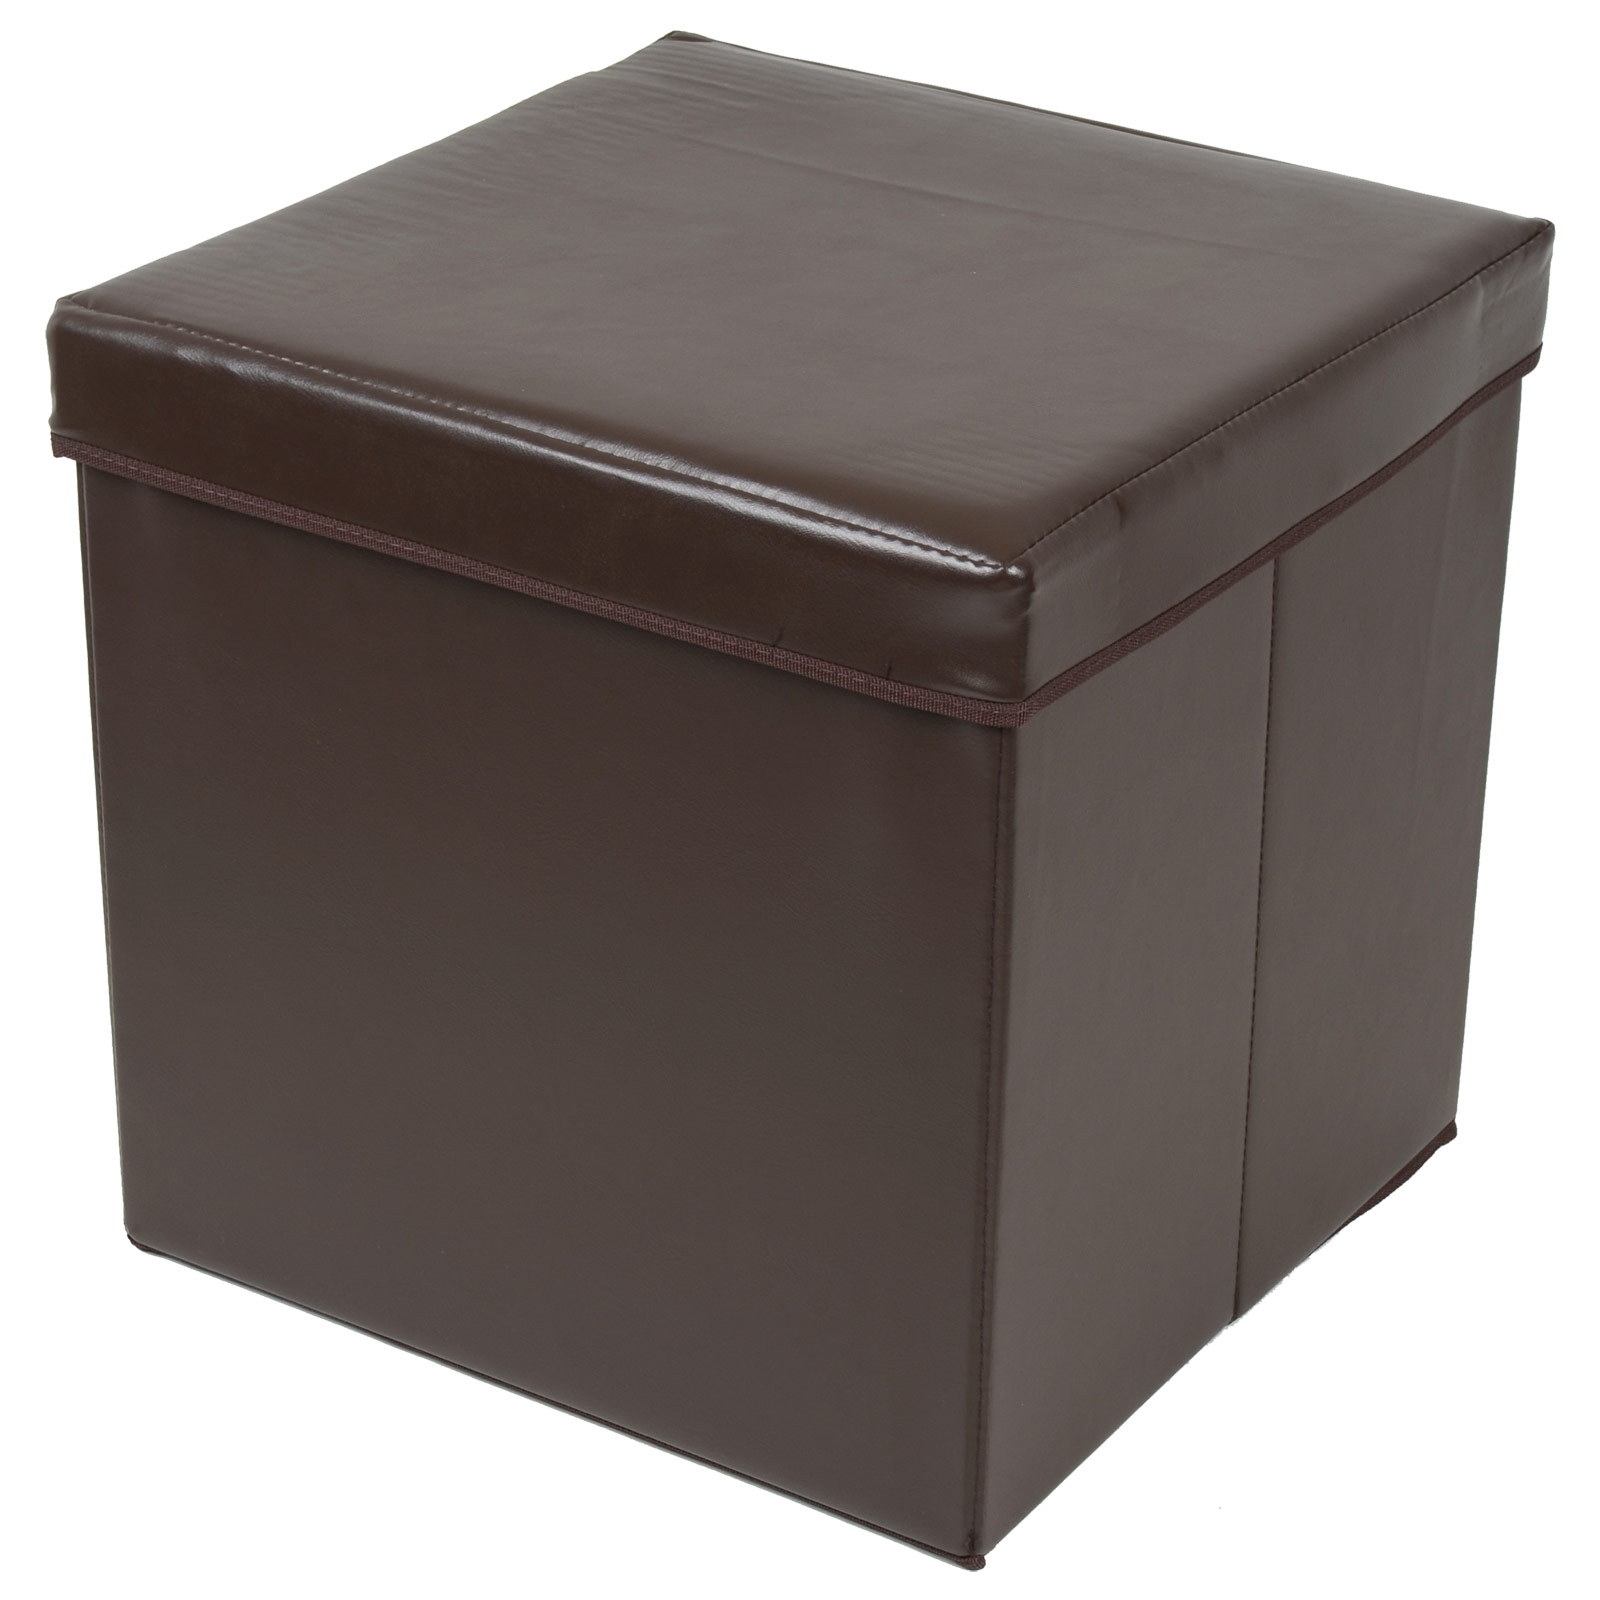 Ottoman Large Faux Leather Folding Storage Pouffe Toy Box Foot For Pouffes And Footstools For Sale (Image 10 of 15)